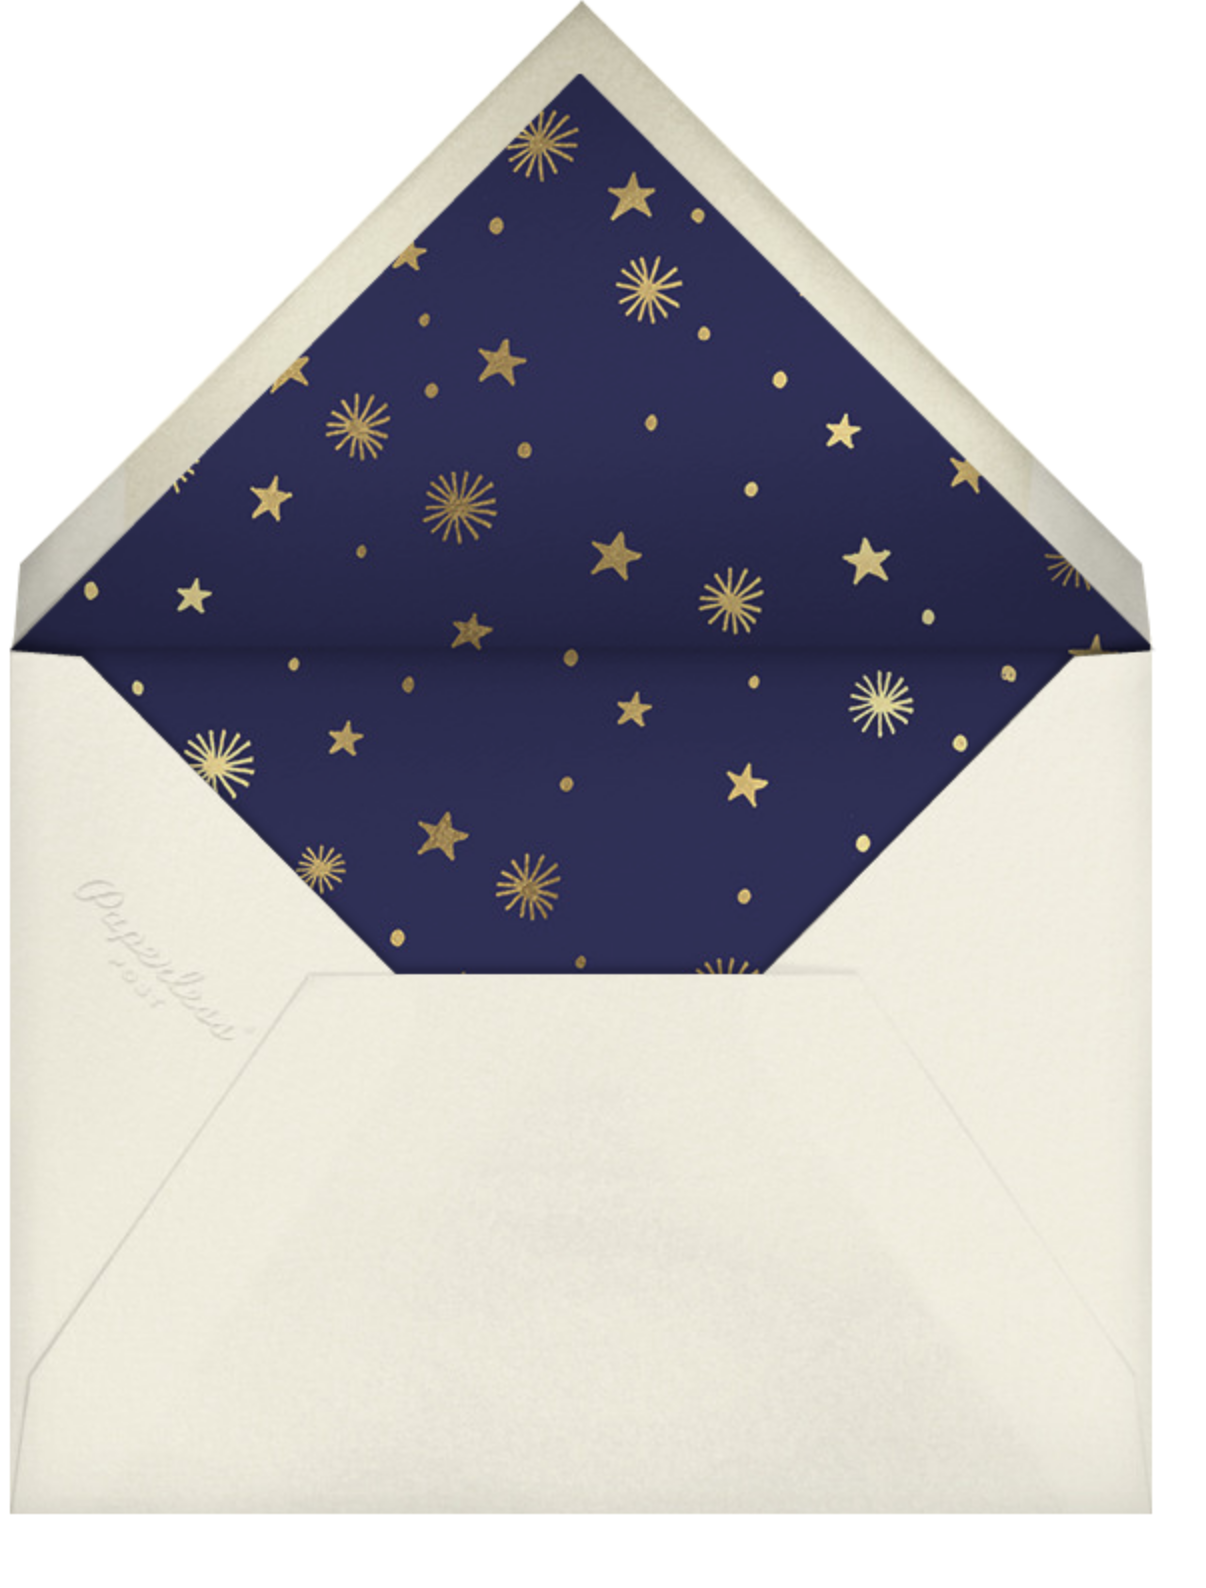 New Moon - Paperless Post - New Year's Eve - envelope back